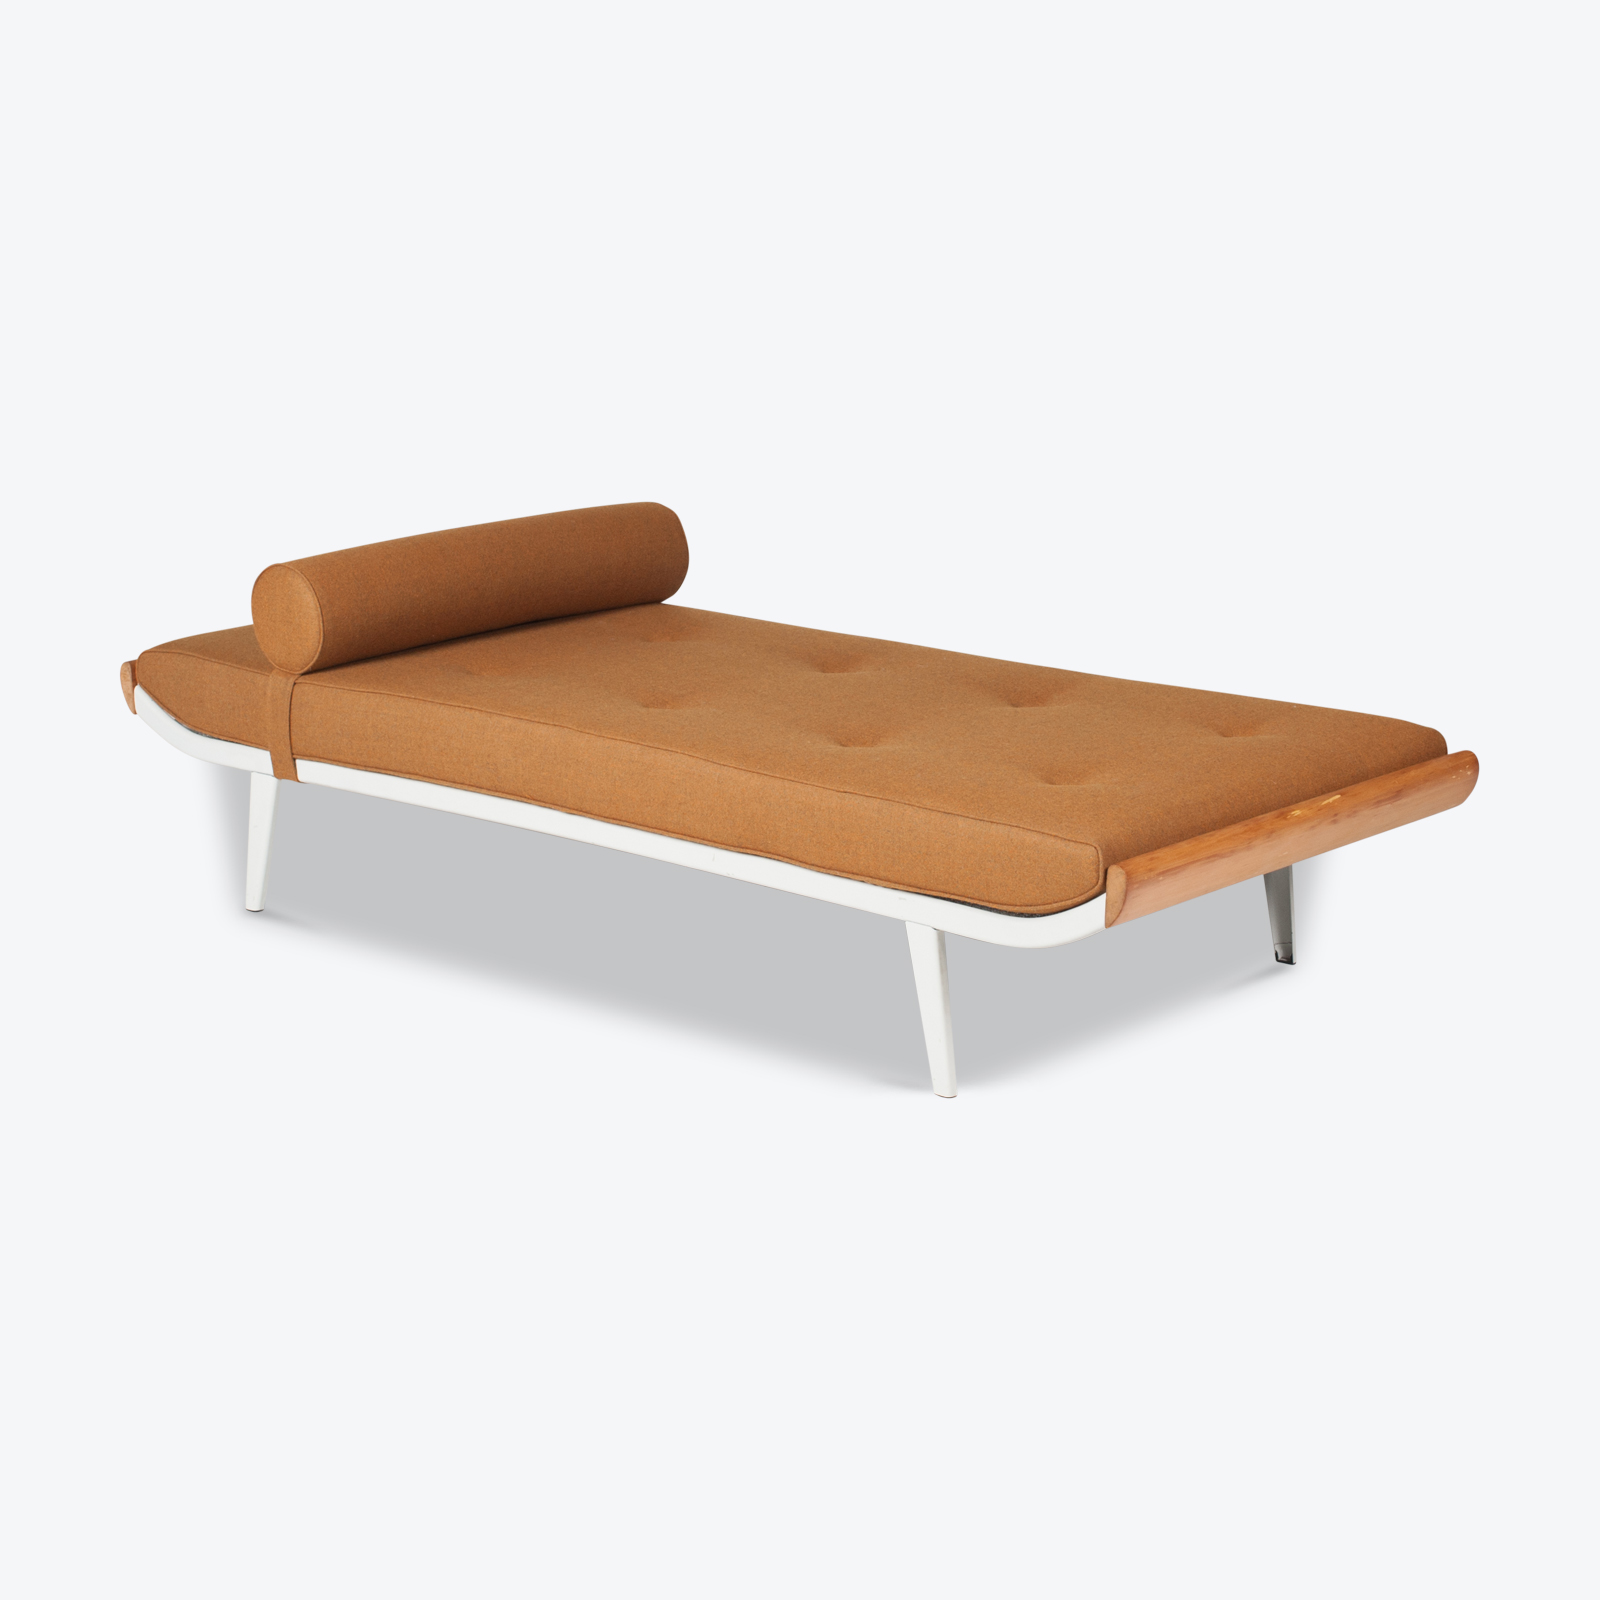 Cleopatra Daybed By Andre Cordemeyer For Auping In Wide White Frame, 1950s, The Netherlands Hero